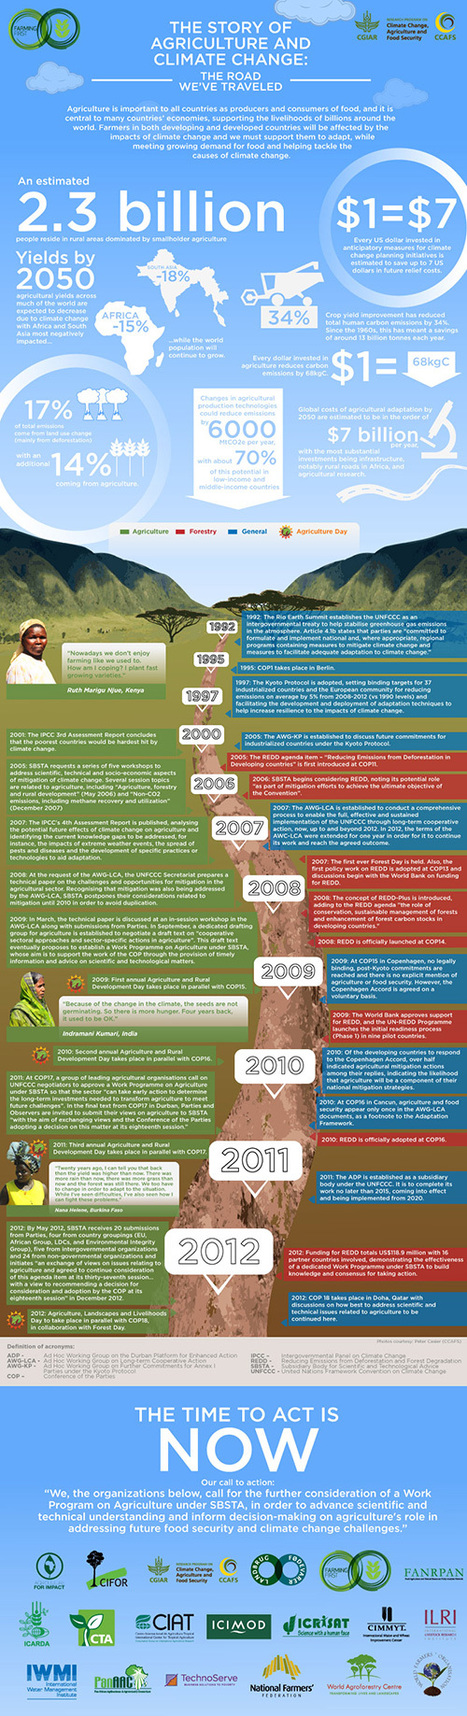 Infographic: Charting the History of Agriculture & Climate Change | AP HUMAN GEOGRAPHY DIGITAL  STUDY: MIKE BUSARELLO | Scoop.it